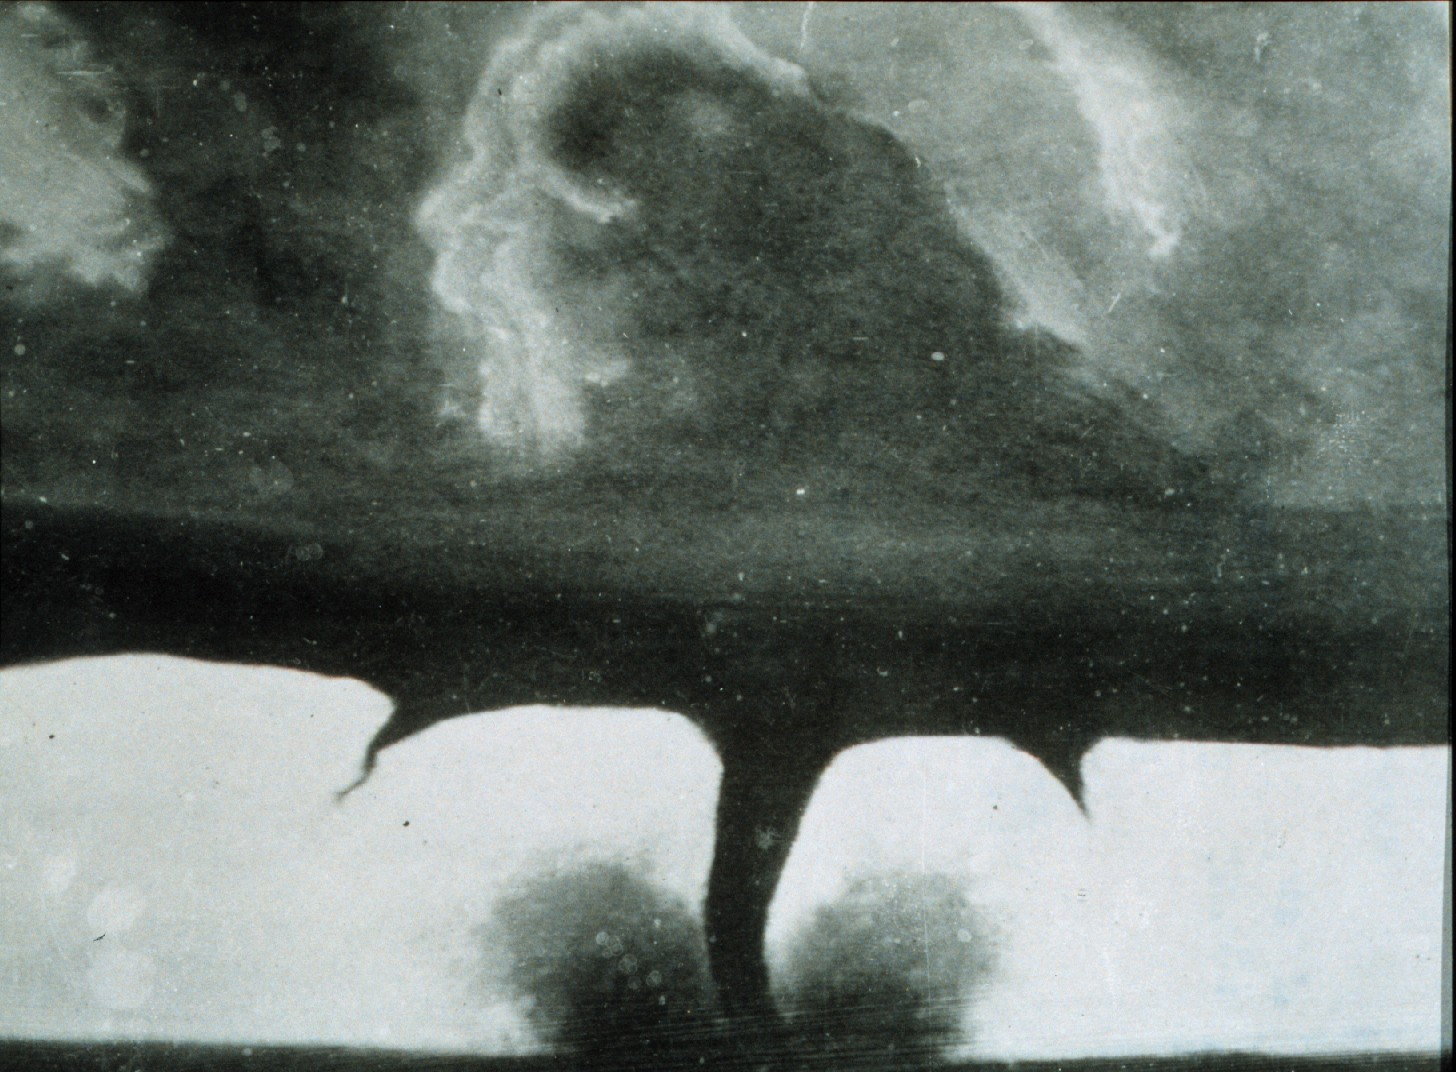 worlds first photographs 1 image